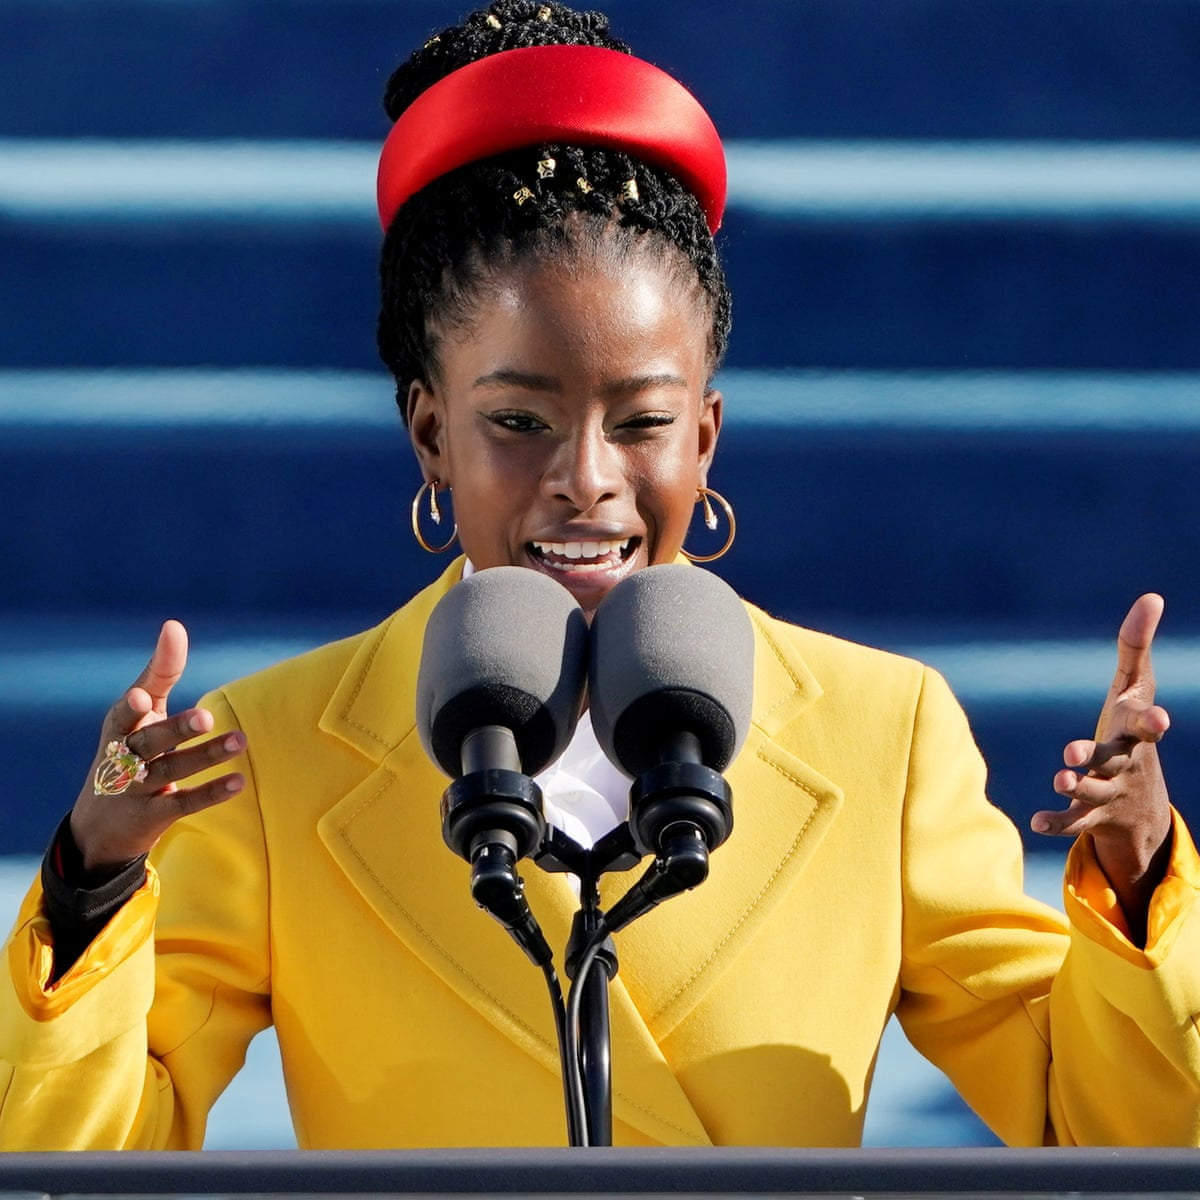 Amanda Gorman at Biden's inauguration reminded me: politics needs poetry |  Poetry | The Guardian